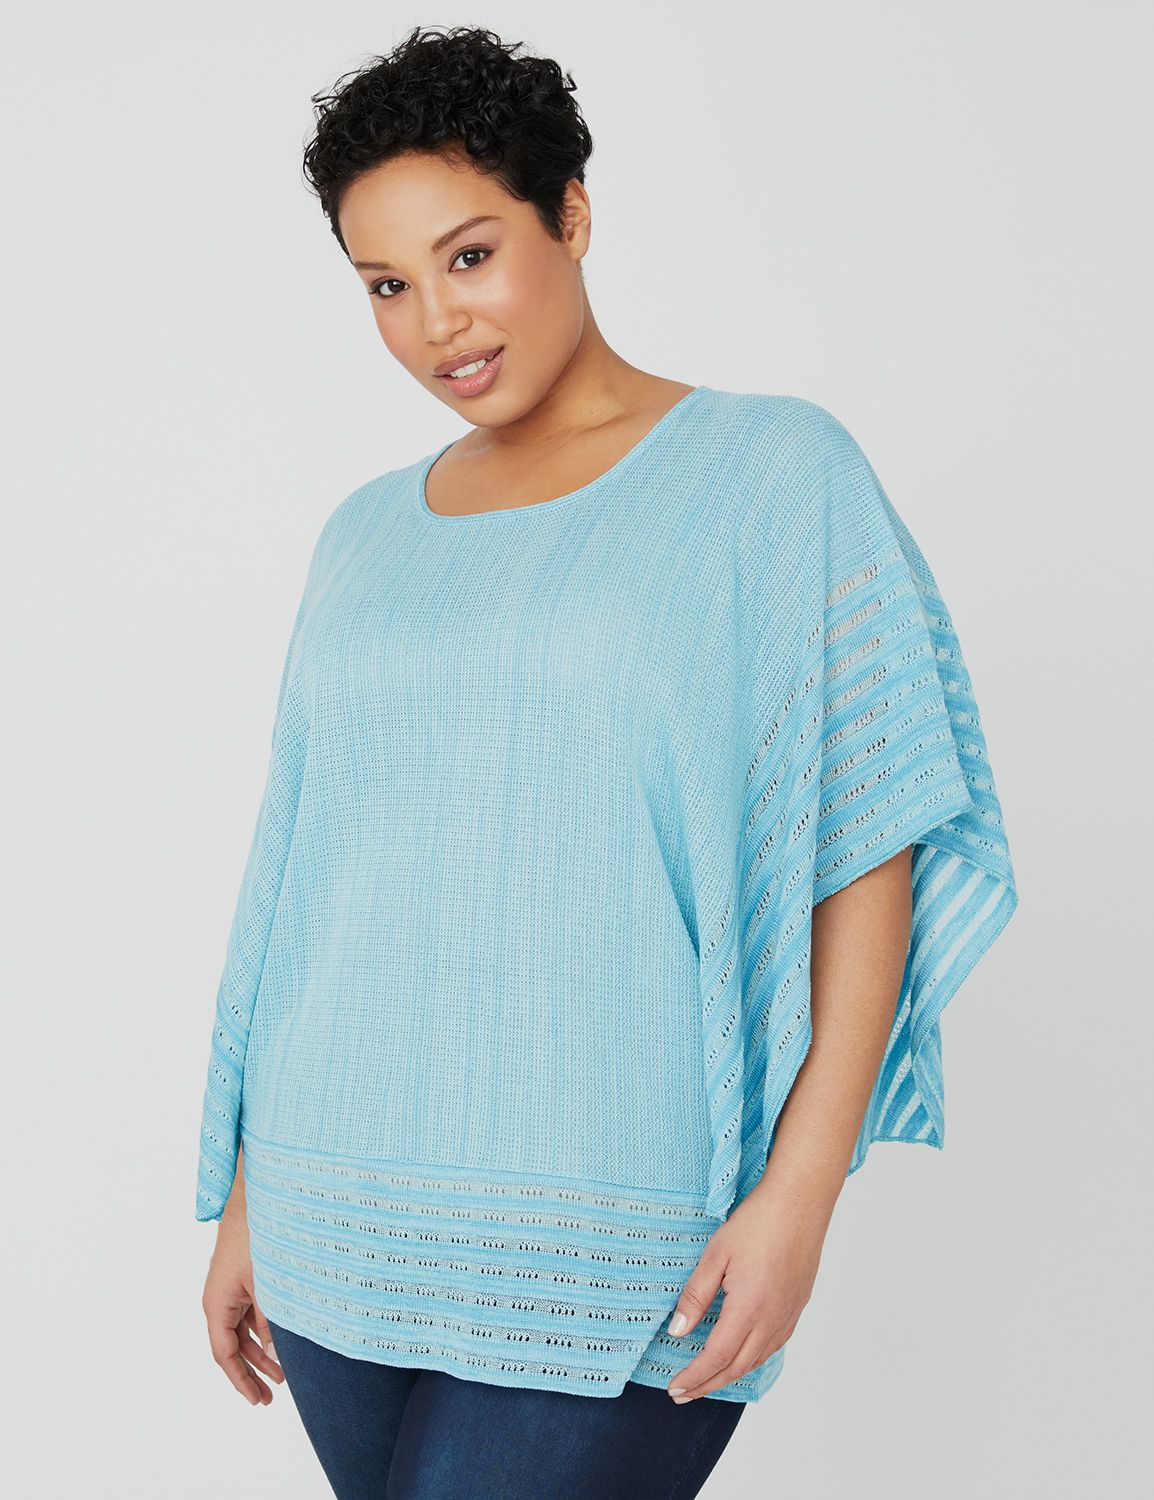 Rippled Edge Sweater 1083897 KimonoPullover 212 MP-300107464